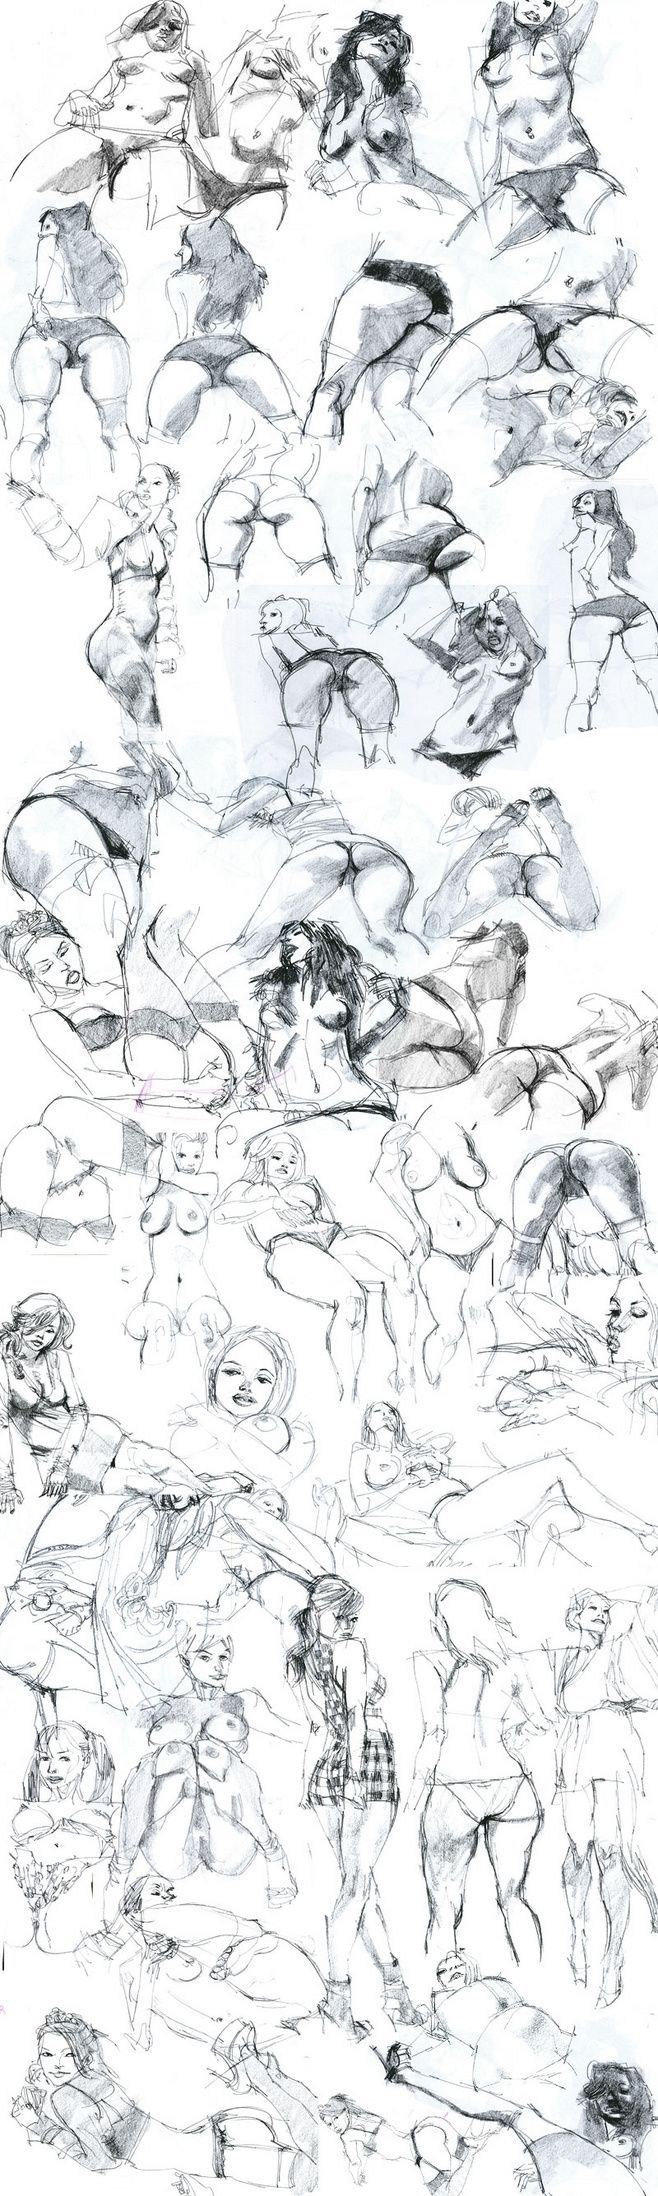 """ec9e9e82c41aed6cf734c559f42f63d5f2e125248035f-DLEy8g_fw658 (658×2196) [   """"Pencil Sketches Part 2 by ~celor on deviantART"""",   """"Yung Wei An original painting acquired"""",   """"~•♠Maggy♀ Biersack♠•~"""",   """"collected Comics"""",   """"Female form"""",   """"Paint"""" ] #<br/> # #Sketches #Part,<br/> # #Art #Drawing #Illustrations,<br/> # #Illustration #Style,<br/> # #Drawing #Sketching,<br/> # #Drawing #Art,<br/> # #Anatomy #Drawing,<br/> # #Drawing #Lessons,<br/> # #Drawing #Ideas,<br/> # #Anatomy #Female<br/>"""